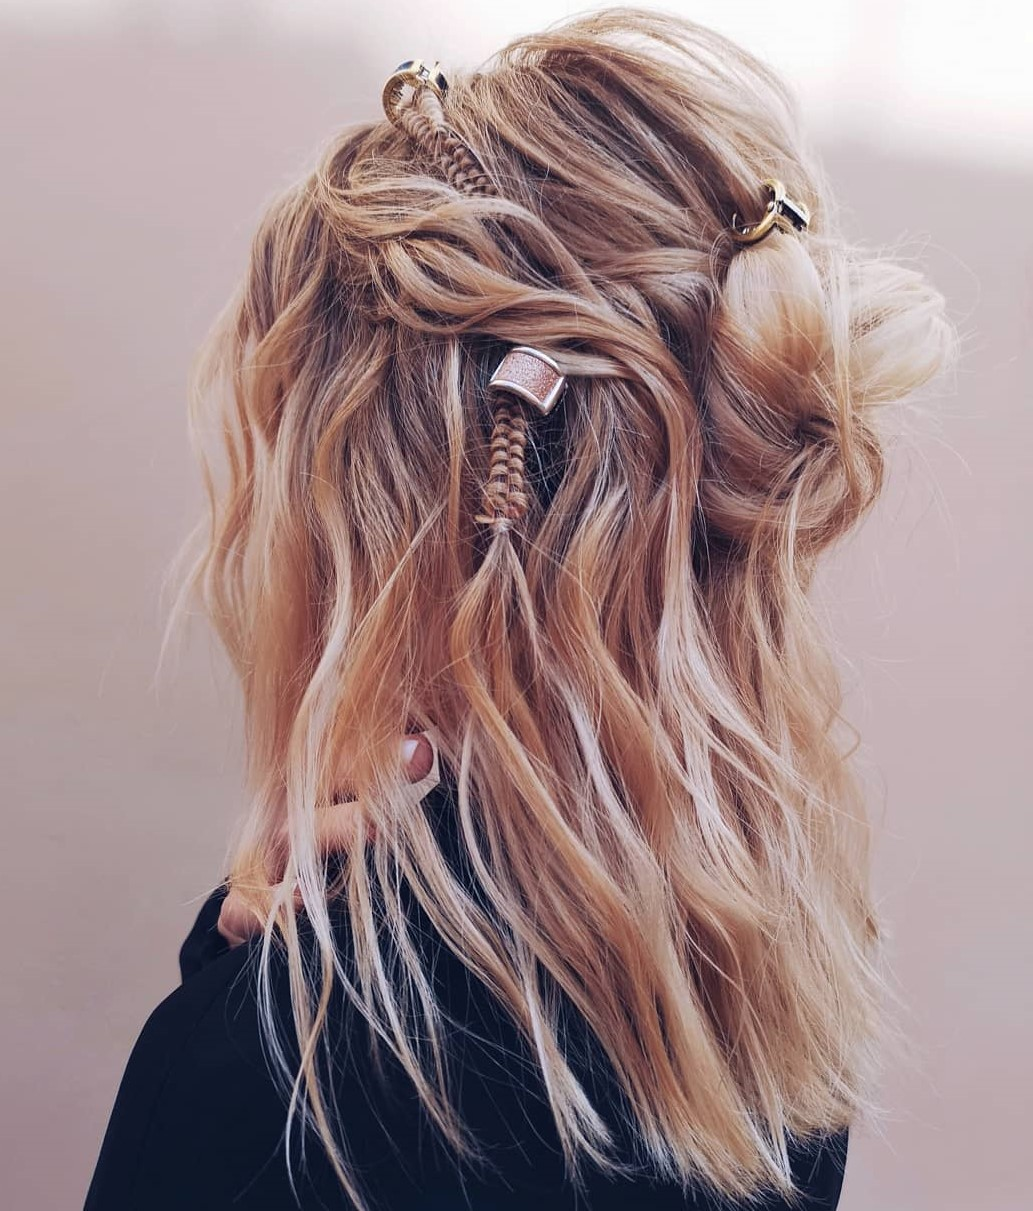 5 Trendiest Half-Up Half-Down Hairstyles for 5 - Hair Adviser